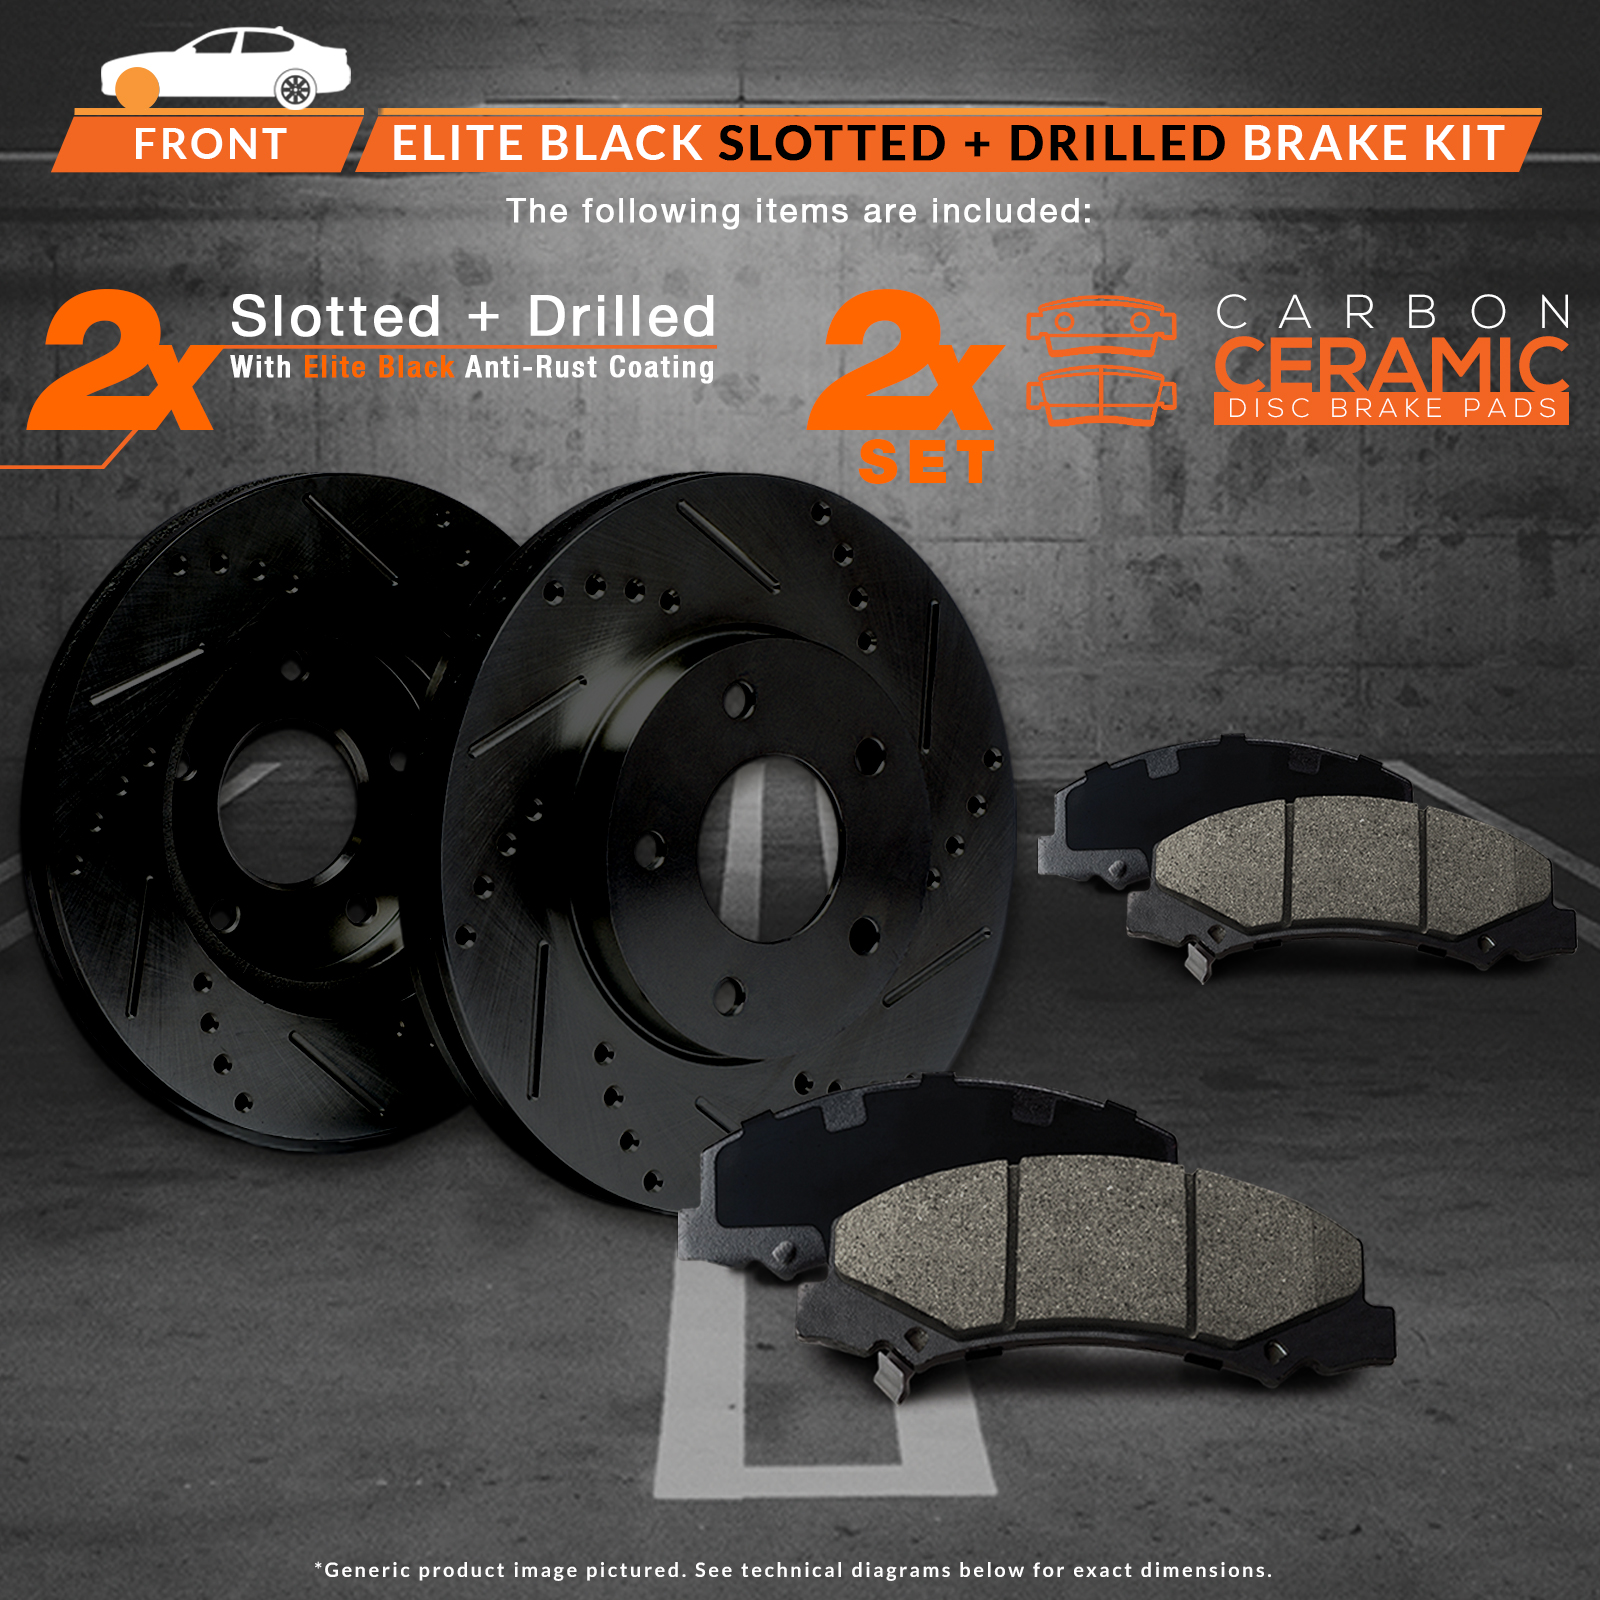 small resolution of max brakes front elite brake kit e coated slotted drilled rotors ceramic pads kt058081 fits 1994 94 1995 95 ford mustang svt cobra gt bullitt